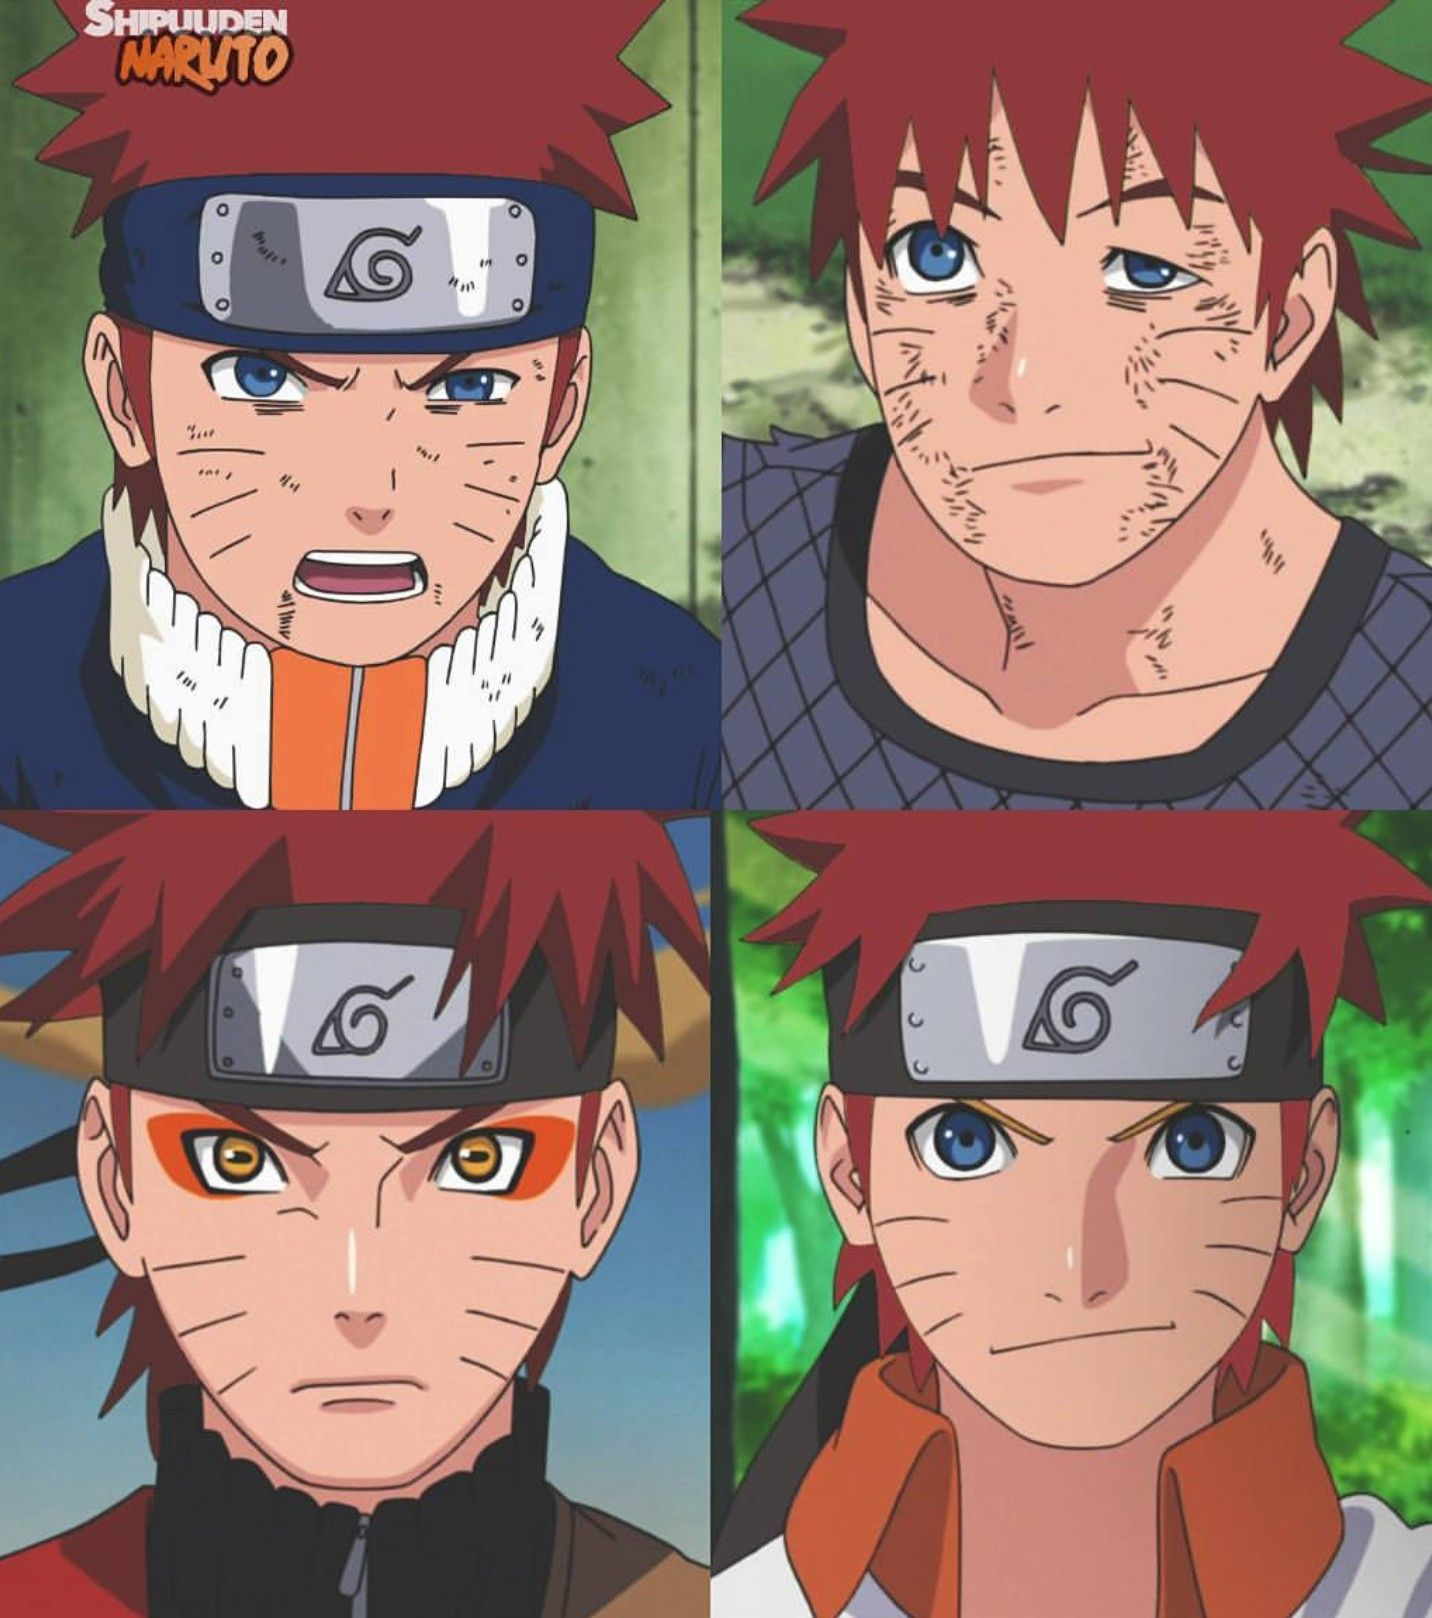 Naruto Looks Good With Red Hair Too 😍